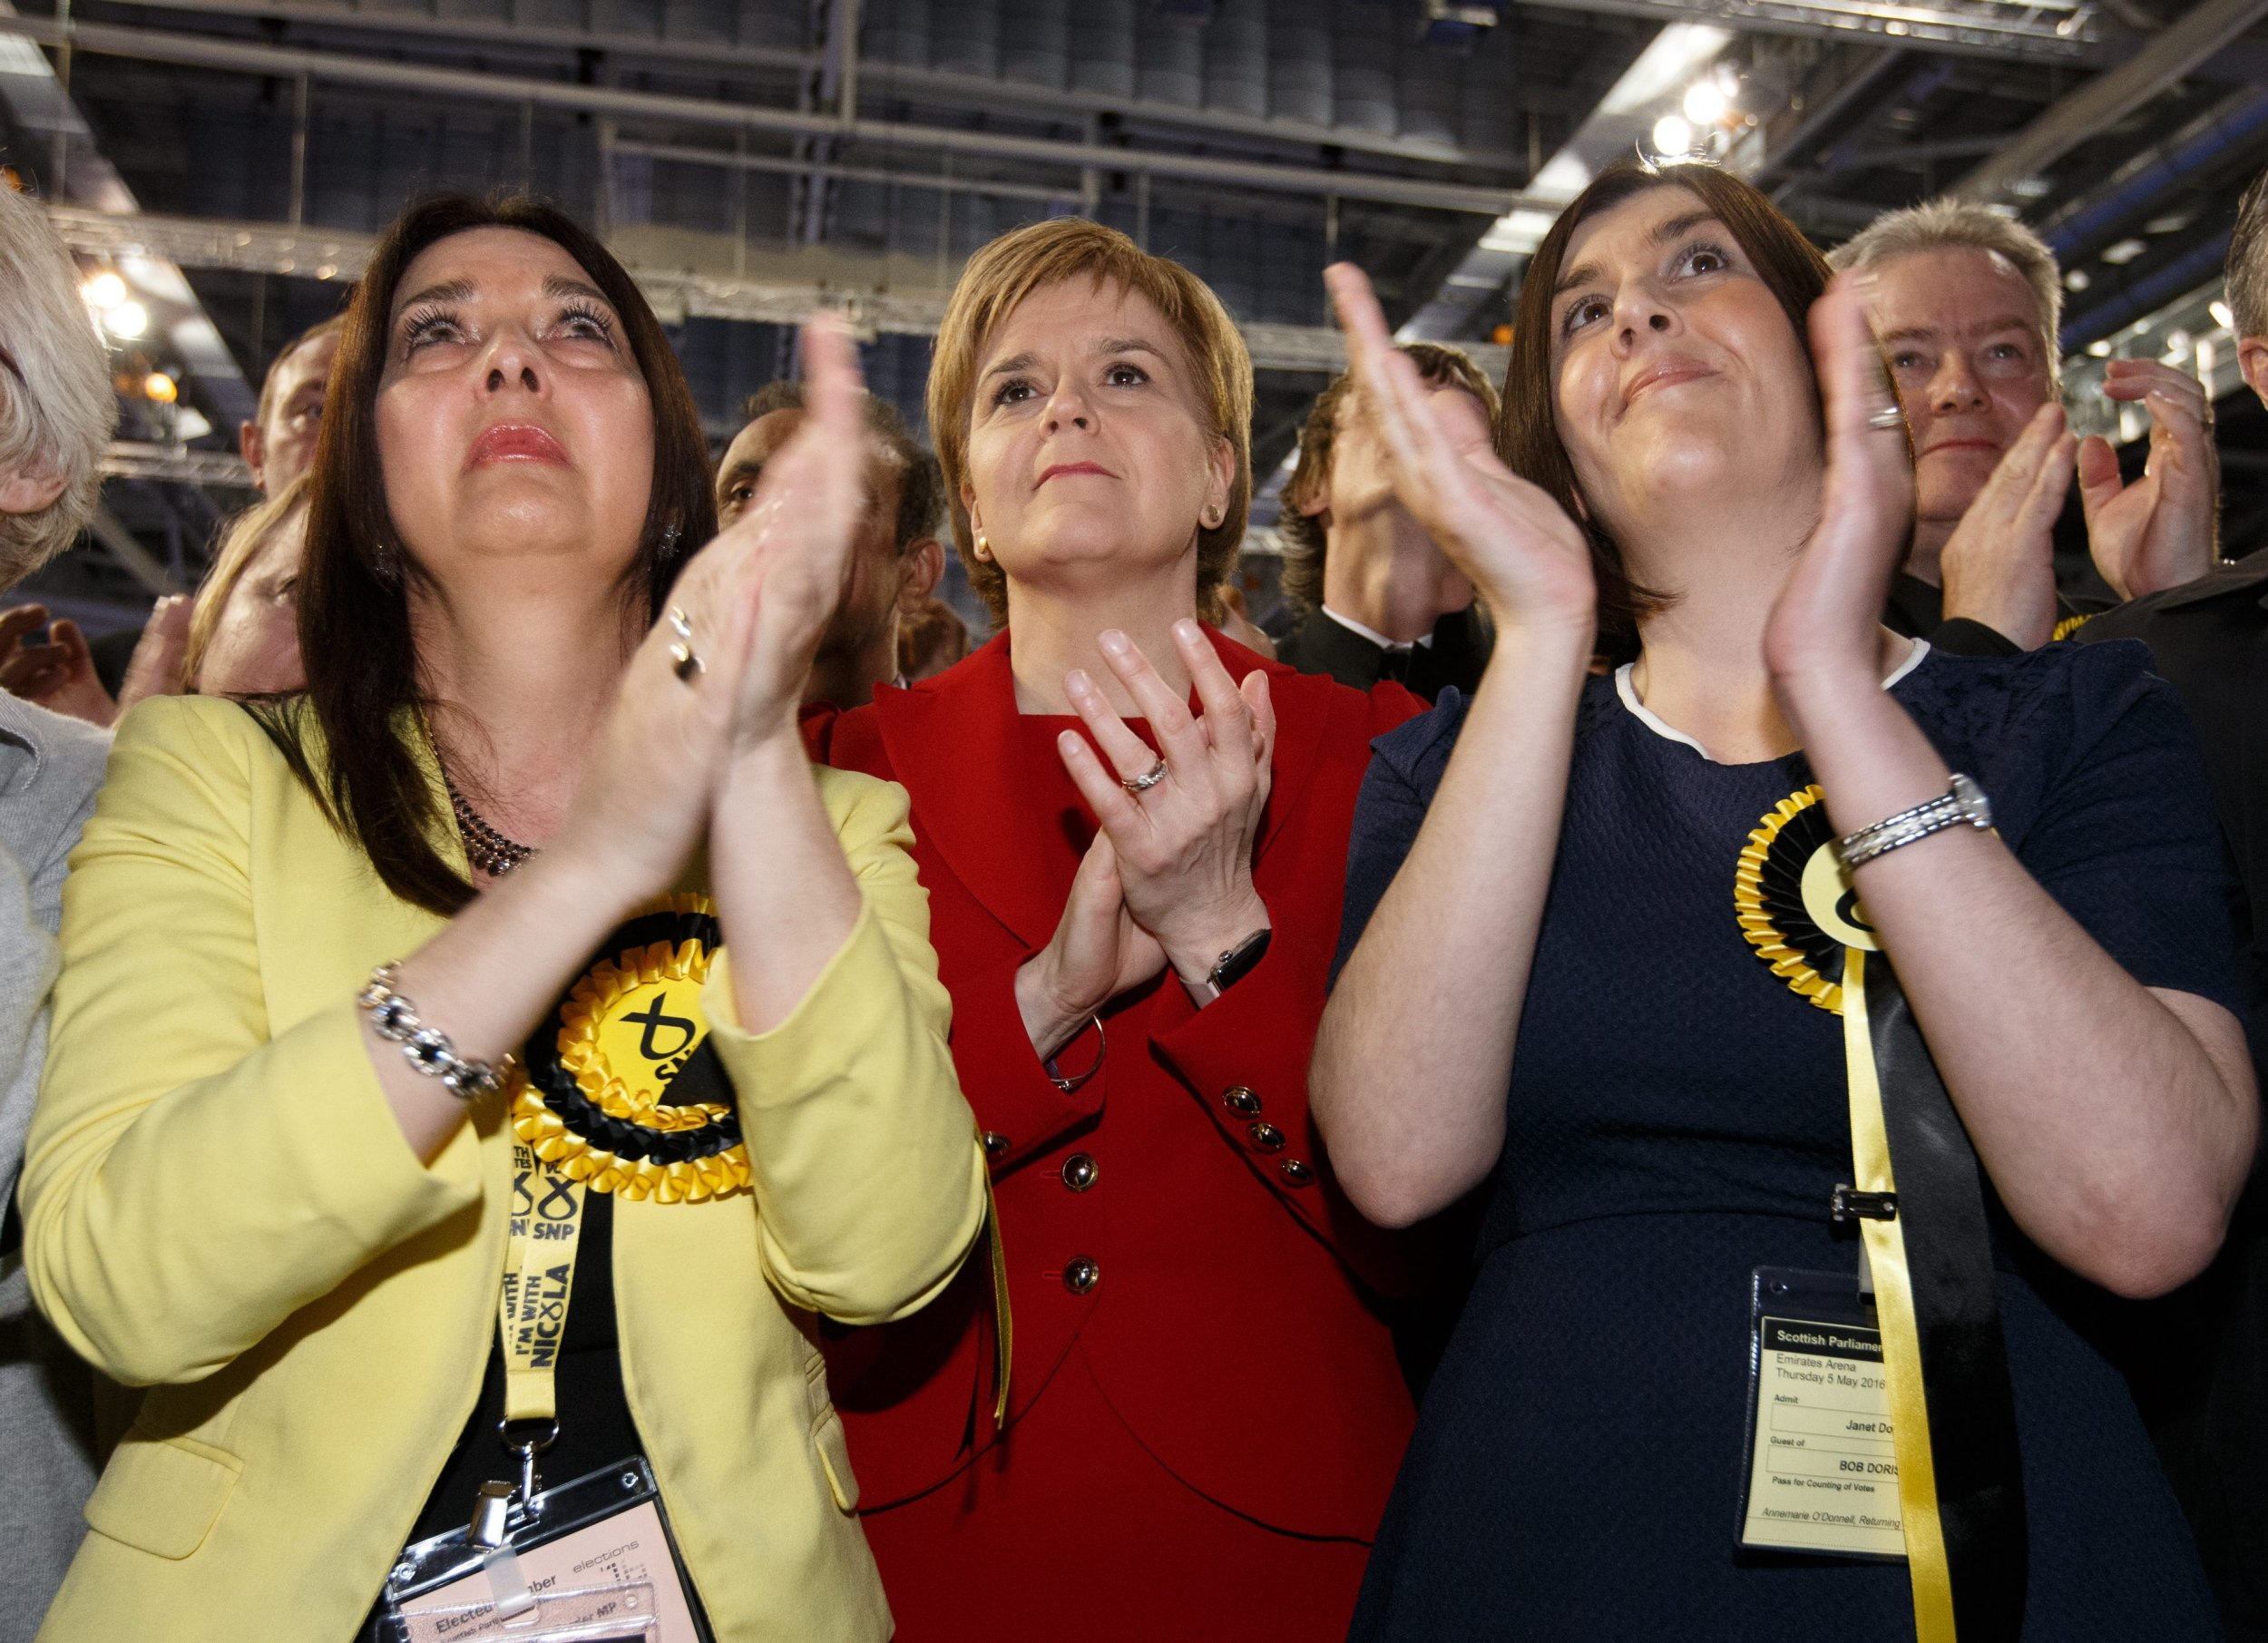 epa05291500 Leader of the Scottish National Party (SNP), Nicola Sturgeon embraces Margaret Ferrier (L), and Janet Doris (R) as her husband Bob Doris (unseen) speaks to the audience at the Emirates Arena in Glasgow, Scotland, Britain, 06 May 2016. The 2016 Scottish Parliament election, which elects 129 members to the Scottish Parliament, was held on 05 May 2016. EPA/ROBERT PERRY